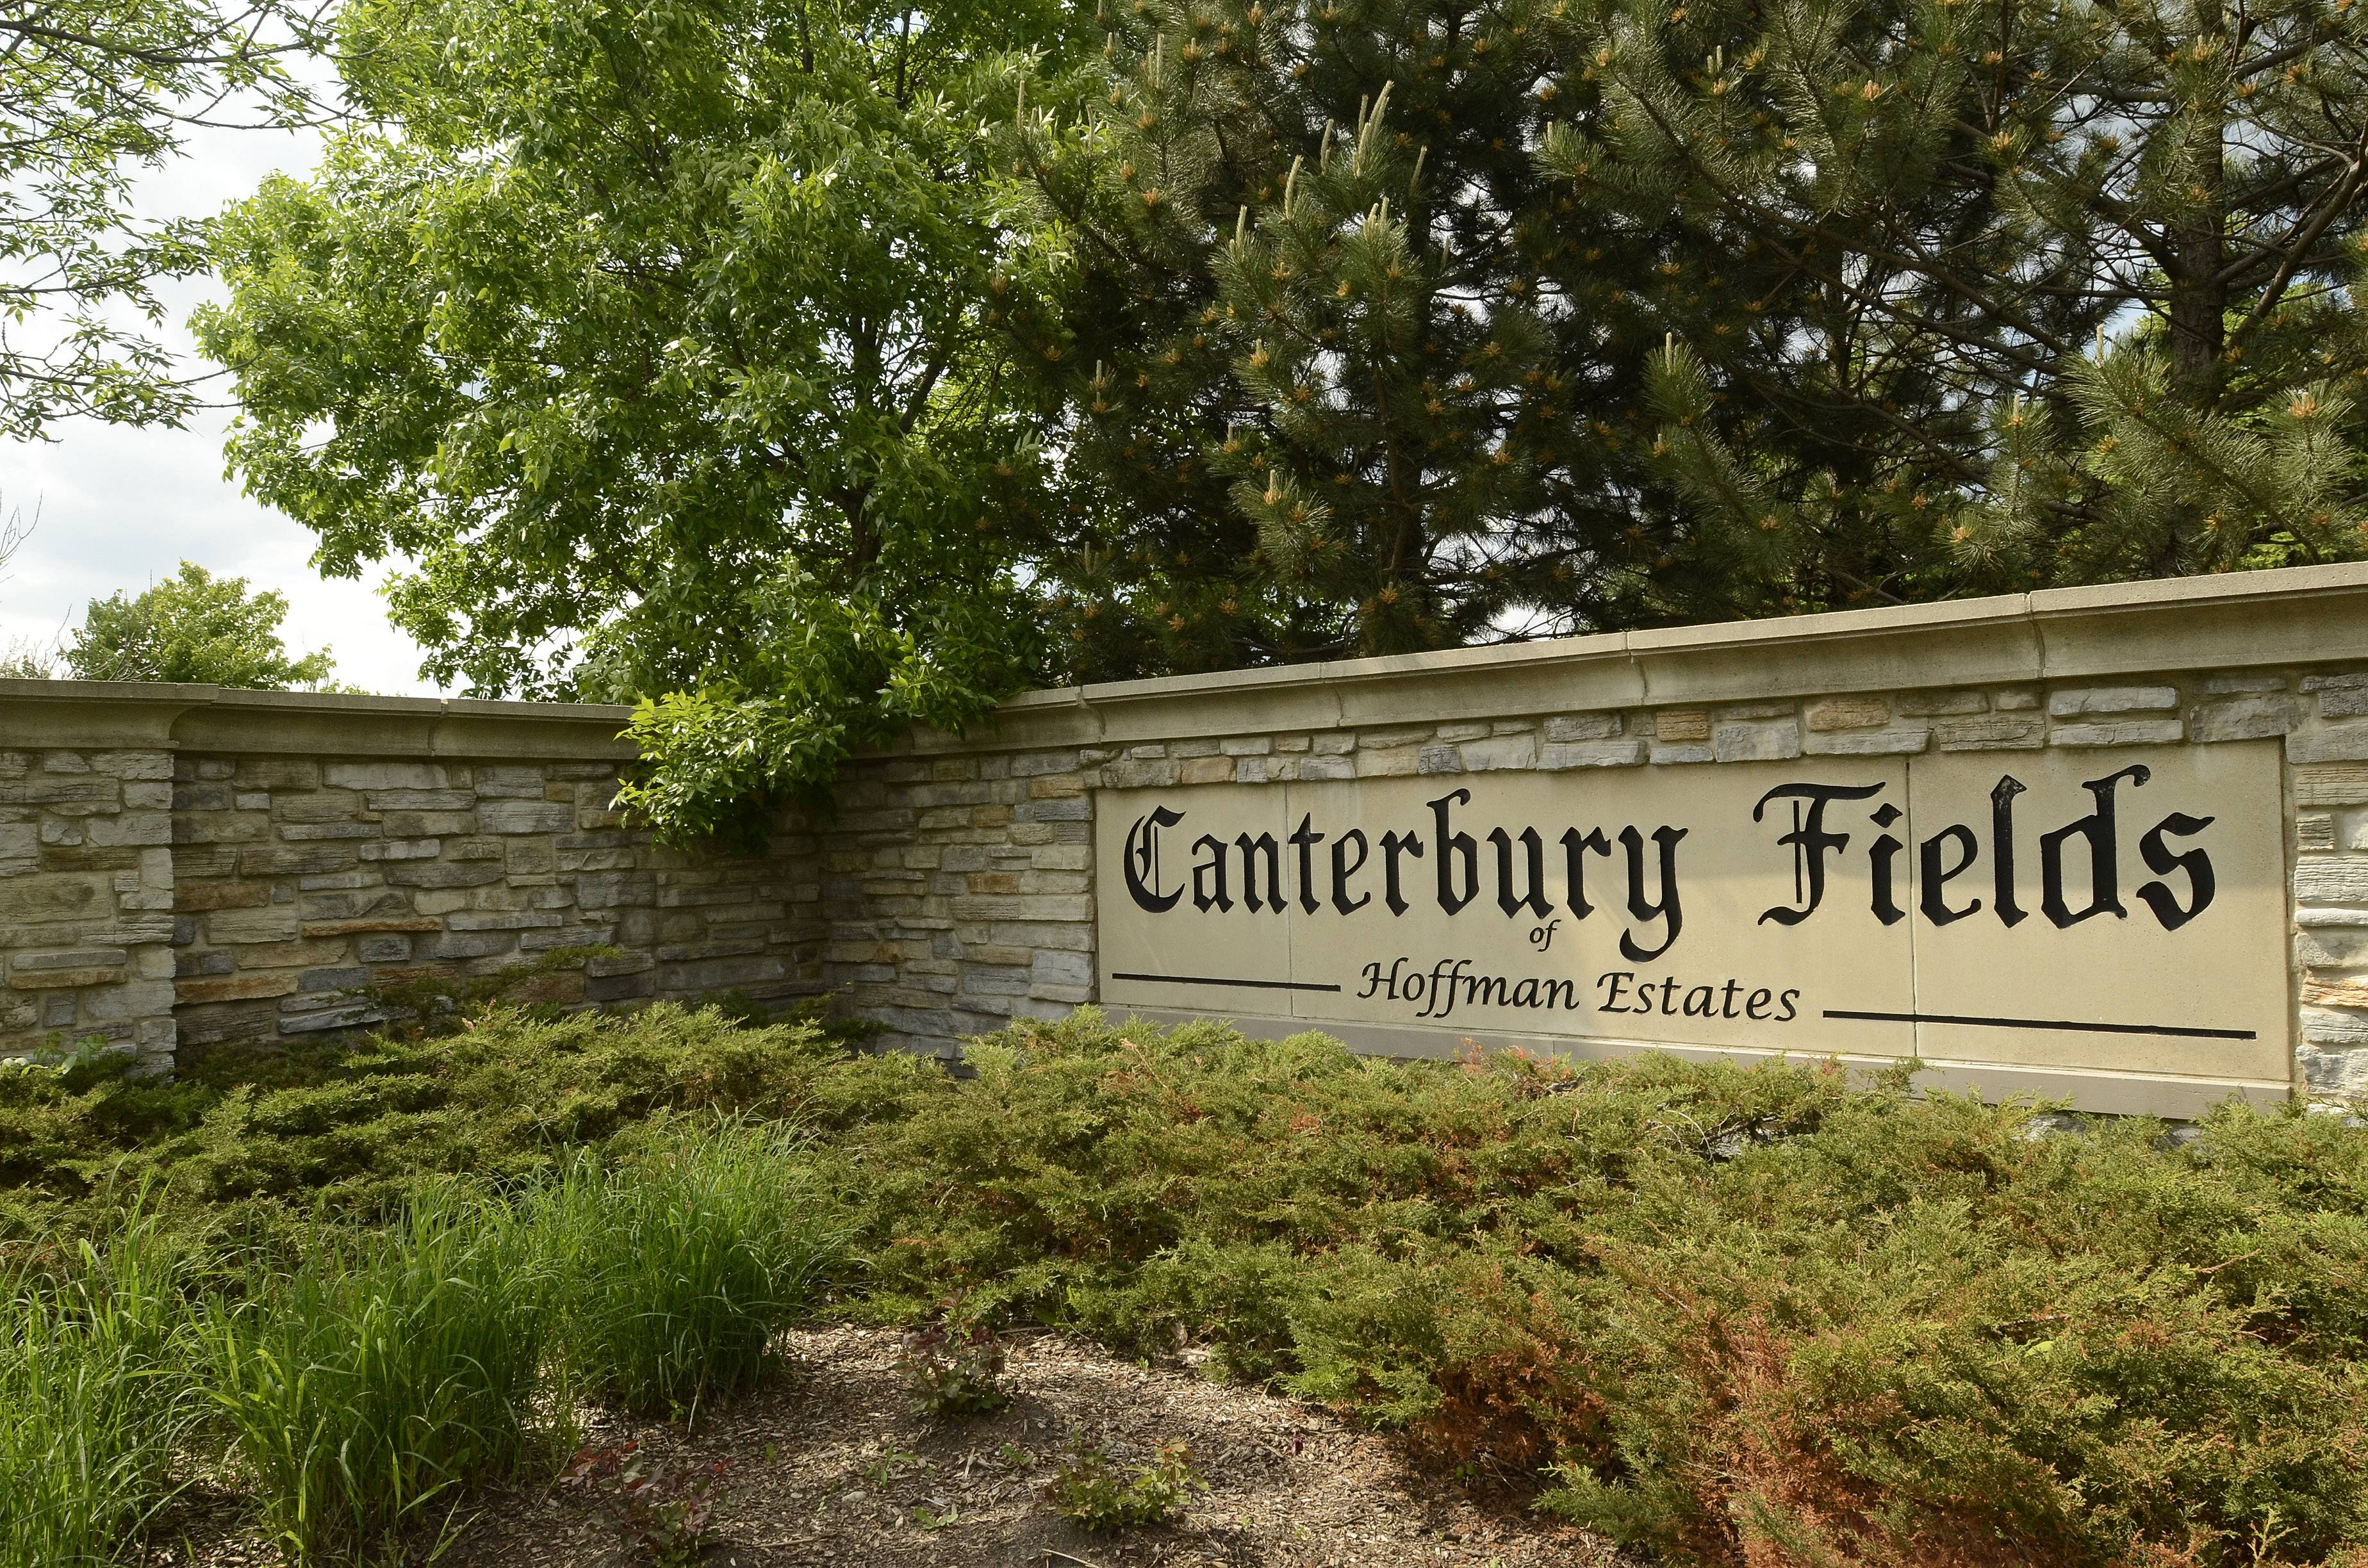 Canterbury Fields is an upscale townhouse community off Shoe Factory Road in Hoffman Estates.